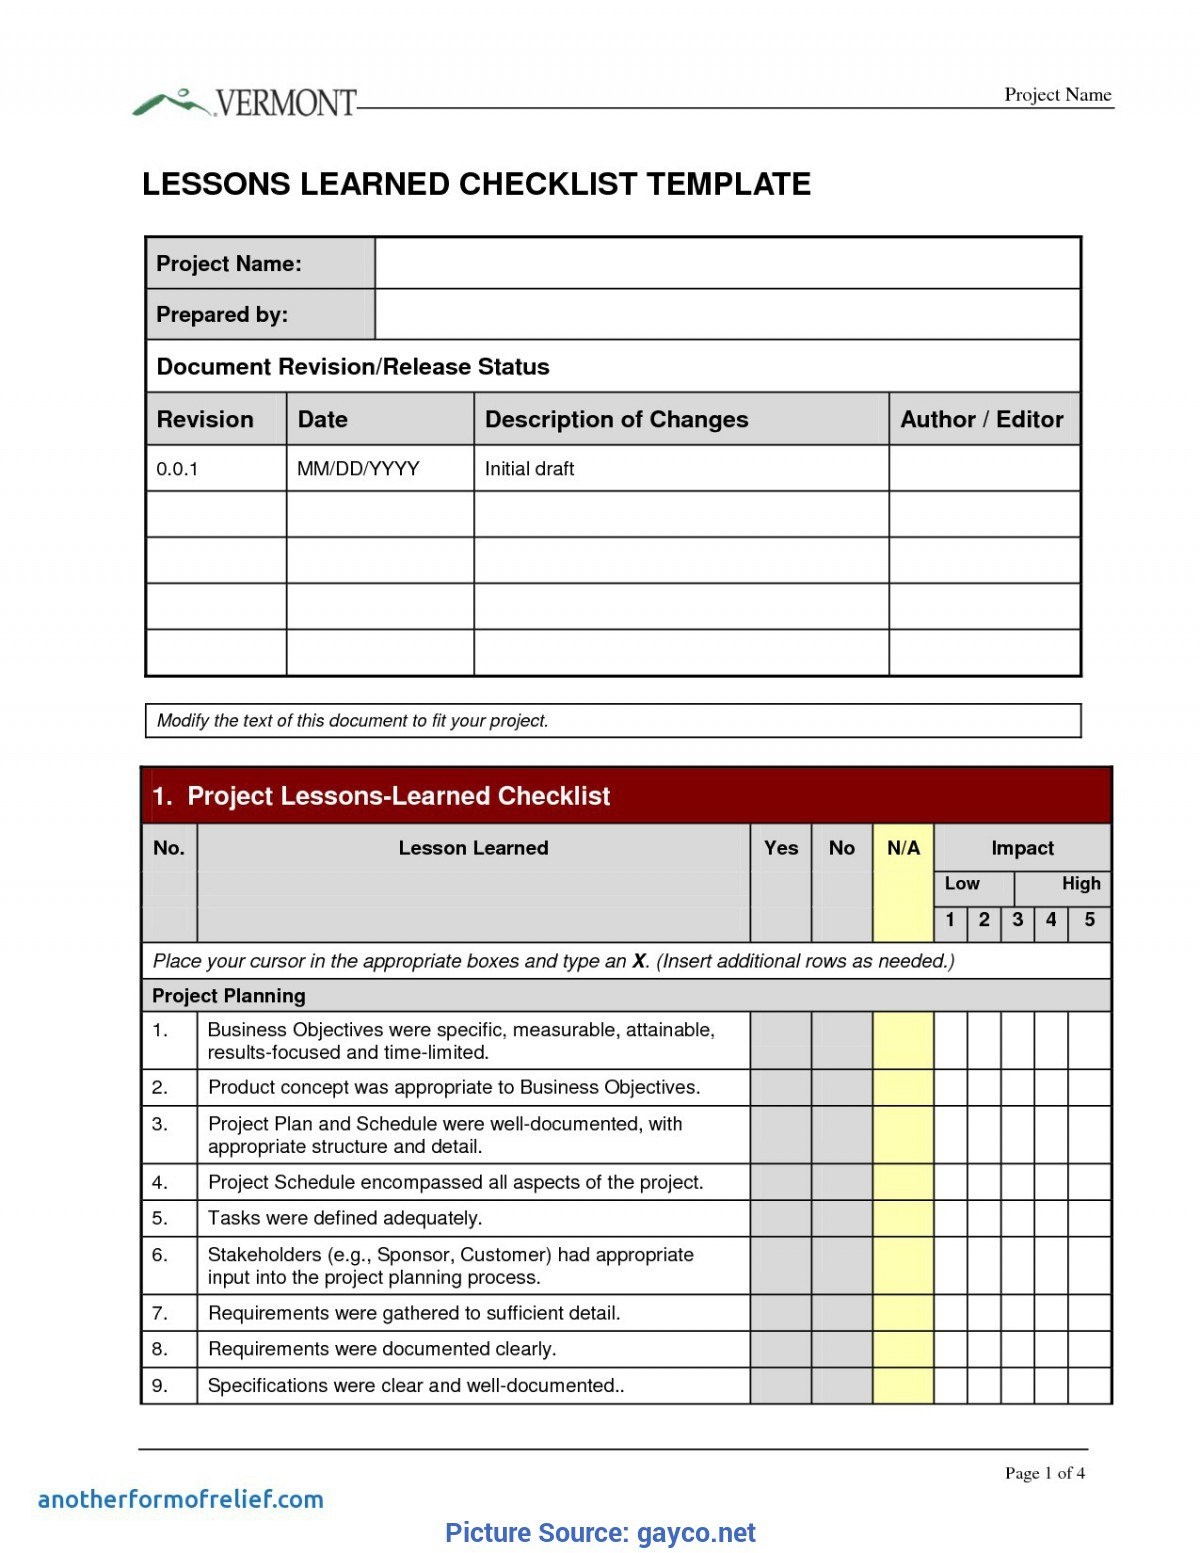 Great Lessons Learnt Template Checklist Prince Lessons Learned Inside Prince2 Lessons Learned Report Template